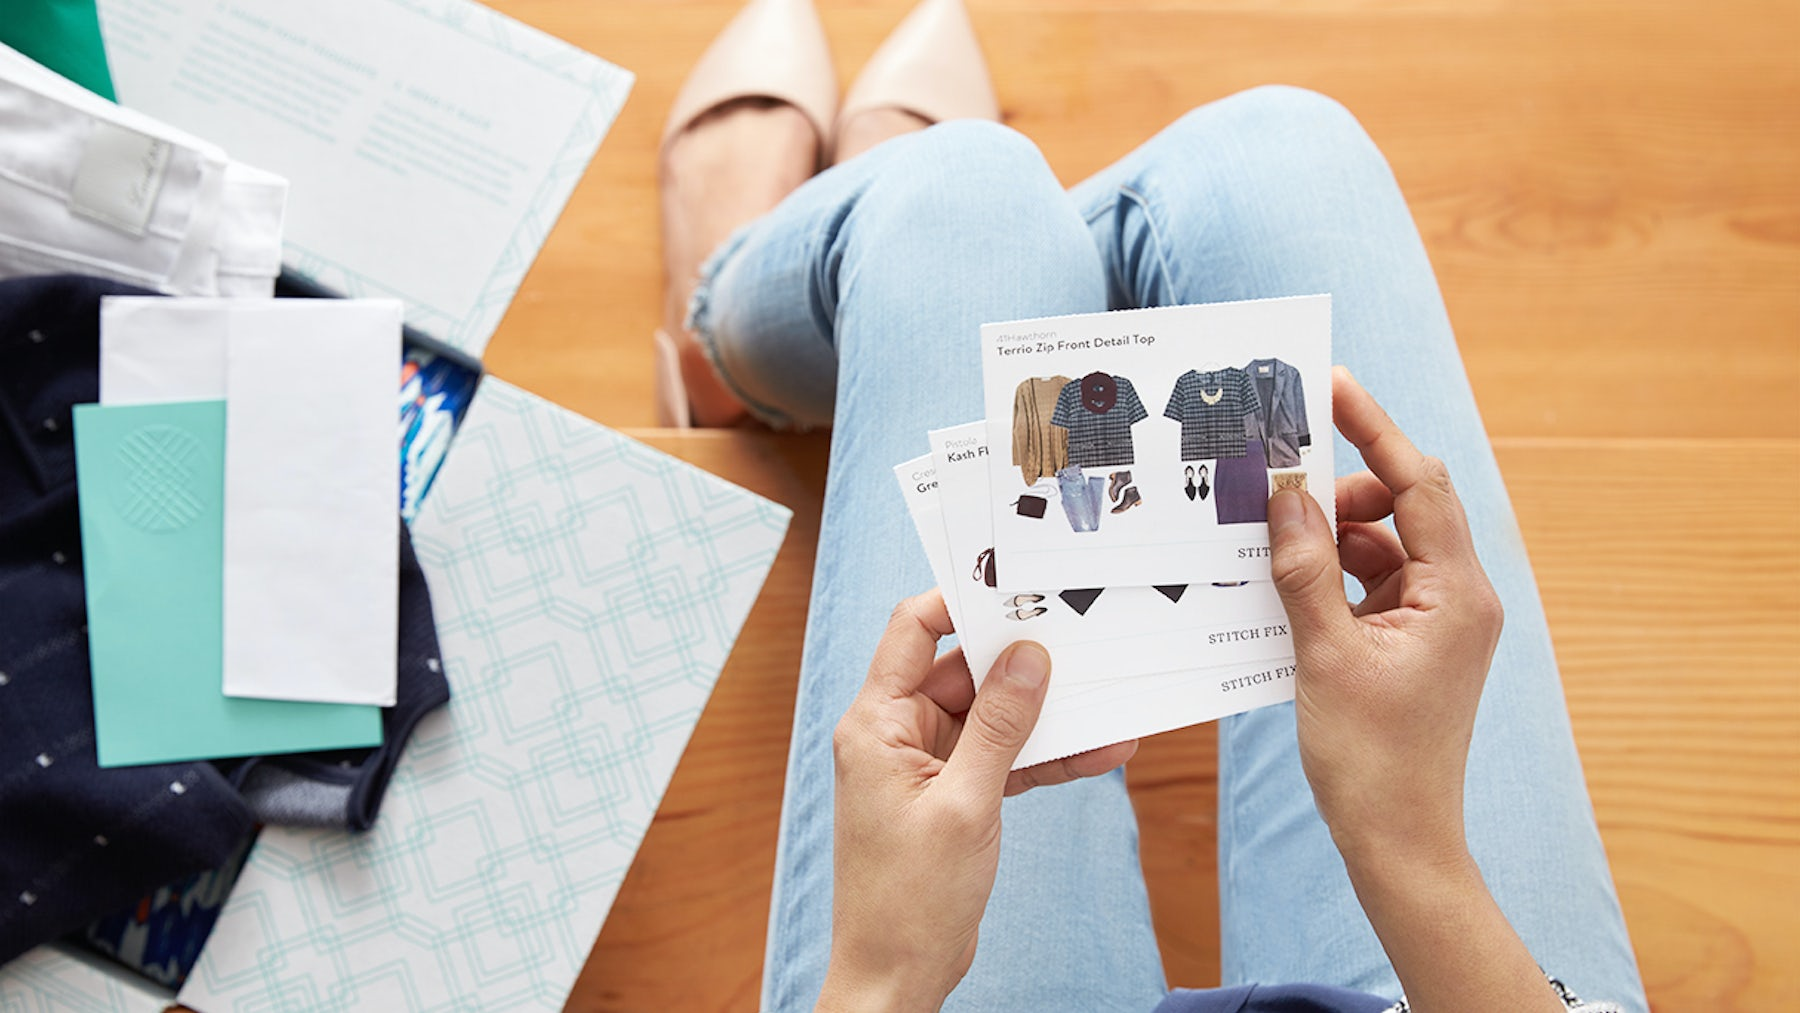 Stitch Fix offers a data-driven personal styling service | Source: Courtesy